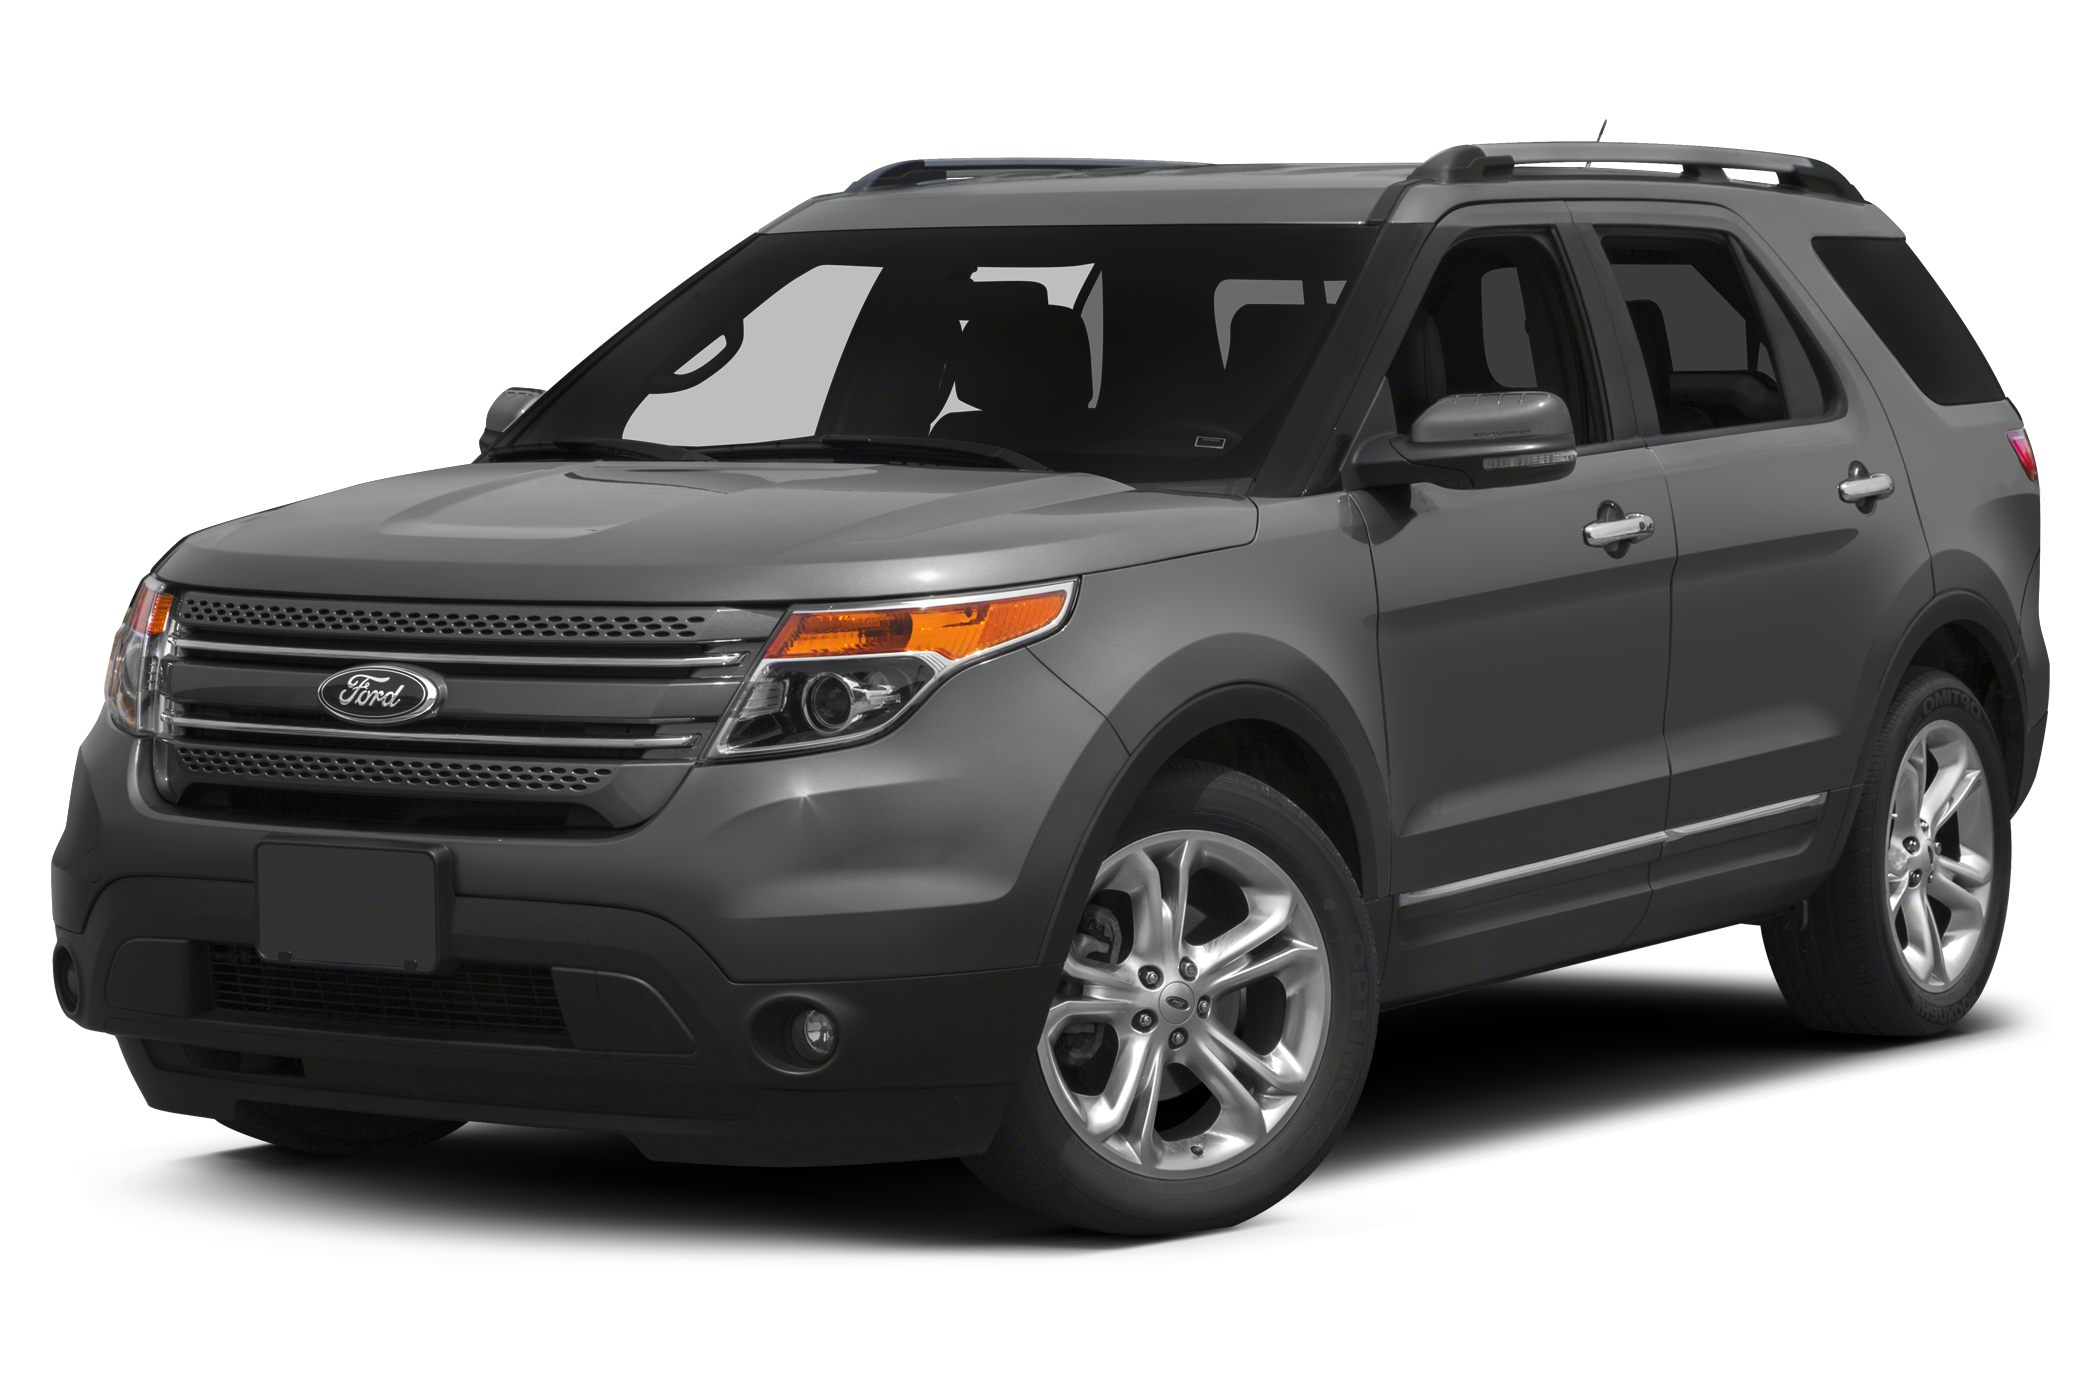 2014 Ford Explorer Limited SUV for sale in San Antonio for $35,999 with 35,166 miles